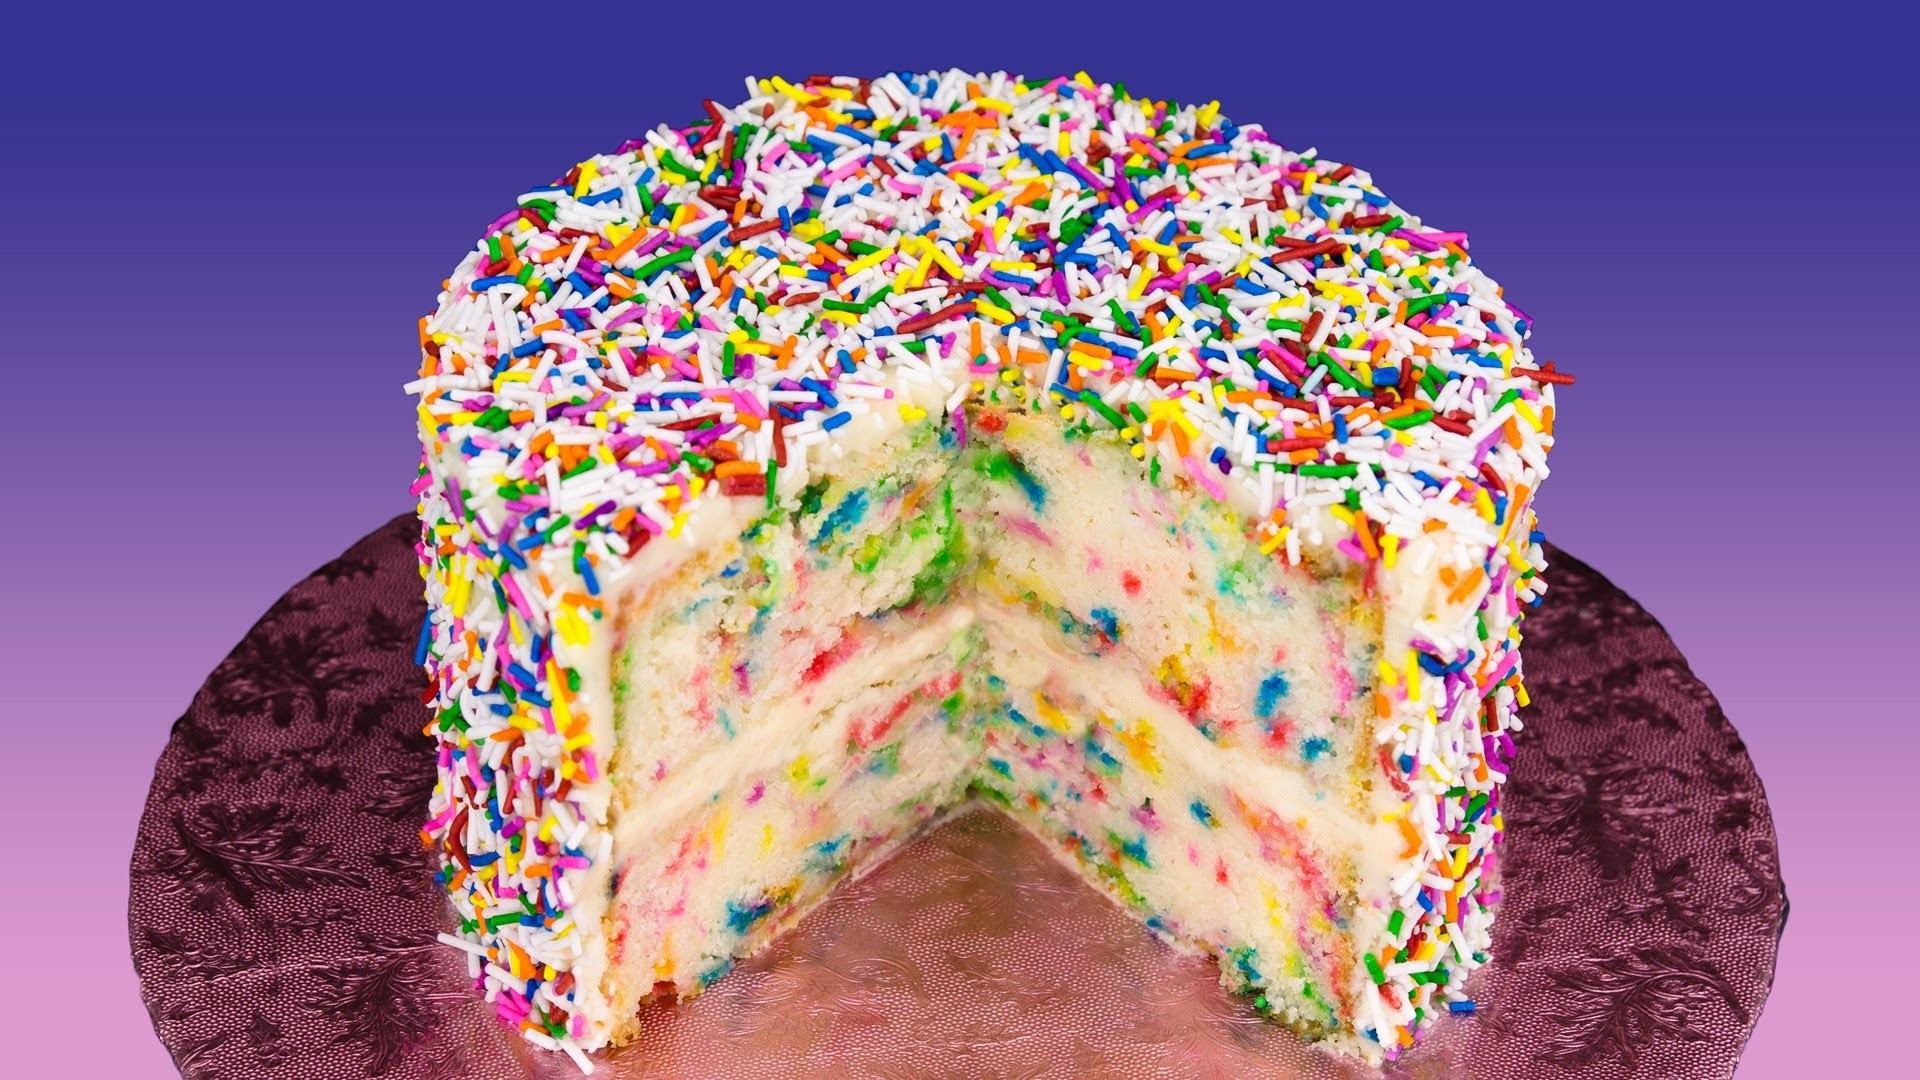 Funfetti Cake Recipe (Birthday Cake with Rainbow Sprinkles) from Cookies Cupcakes and Cardio